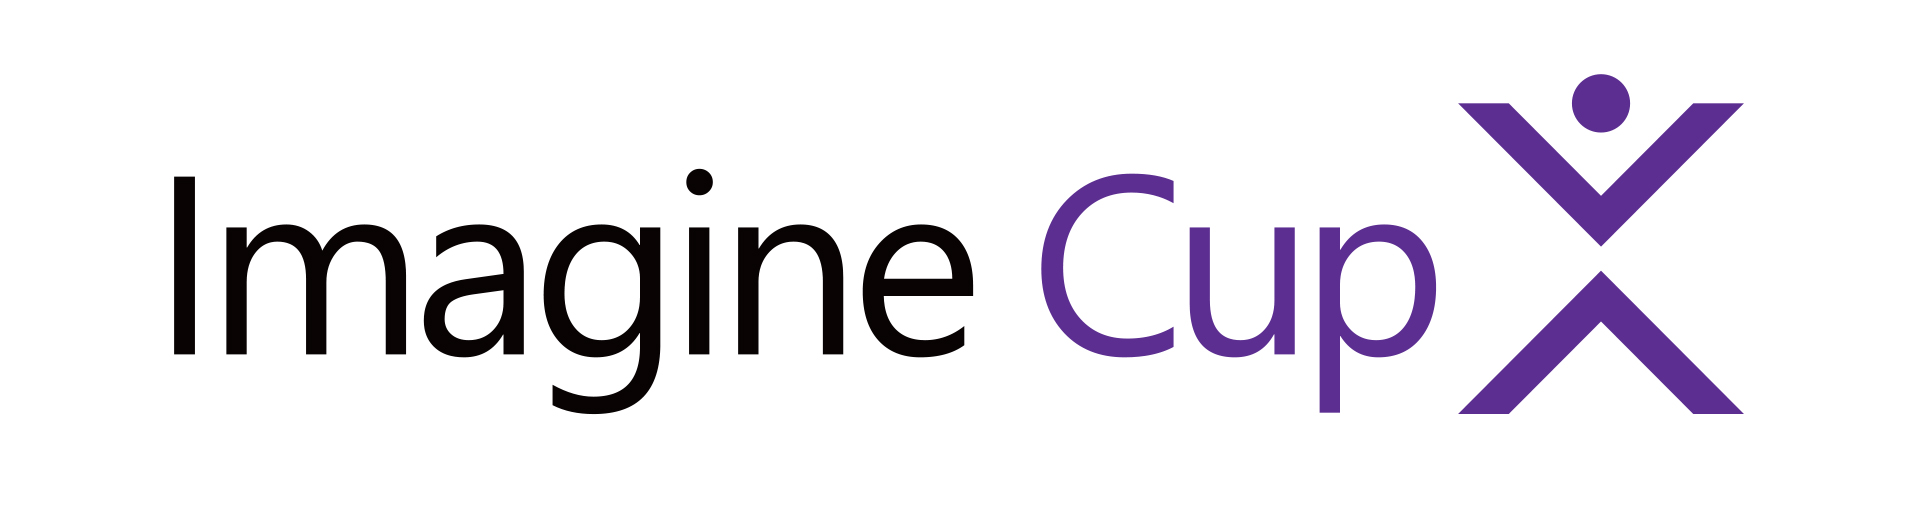 Logotipo de Imagine Cup